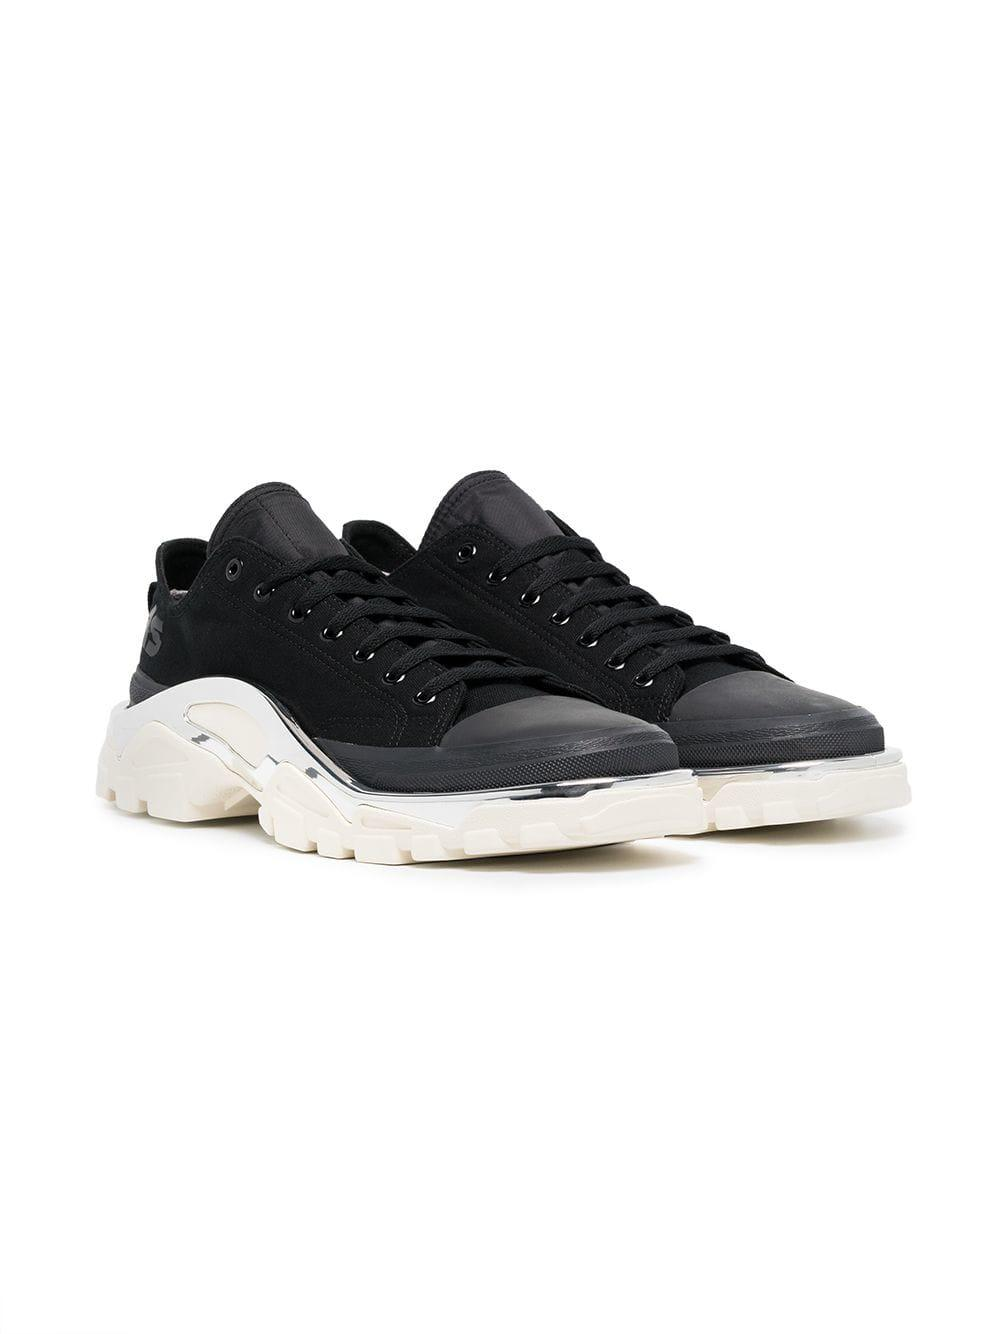 cheap for discount 6366a 83673 Adidas By Raf Simons - Black Detroit Runner Sneakers - Lyst. View fullscreen